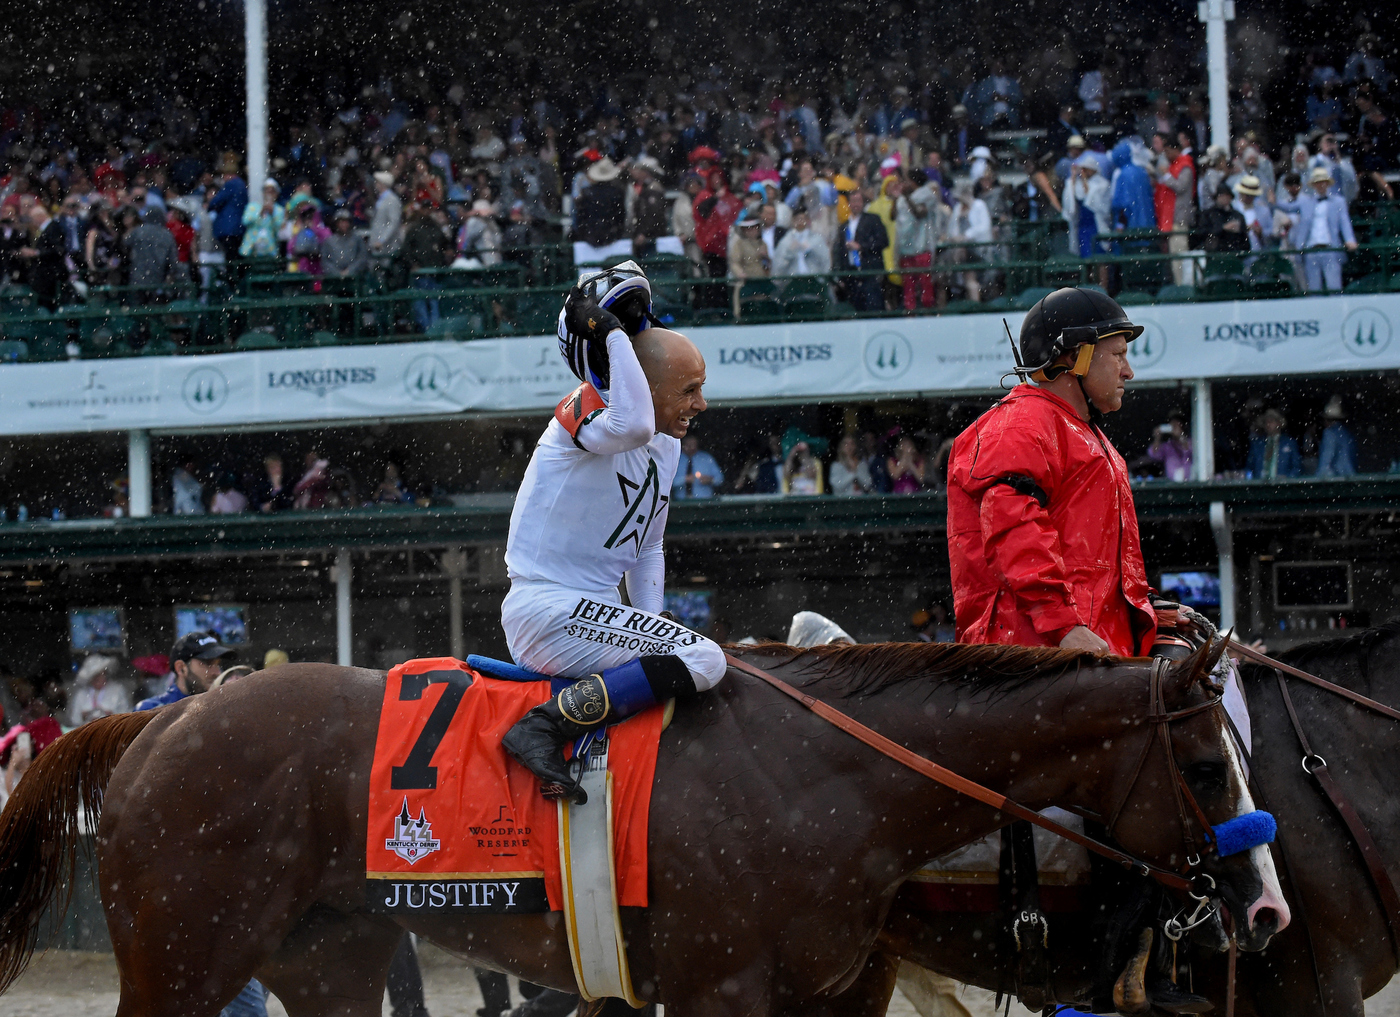 Longines Flat Racing Event: Longines Honors Justify's Kentucky Derby Victory  3